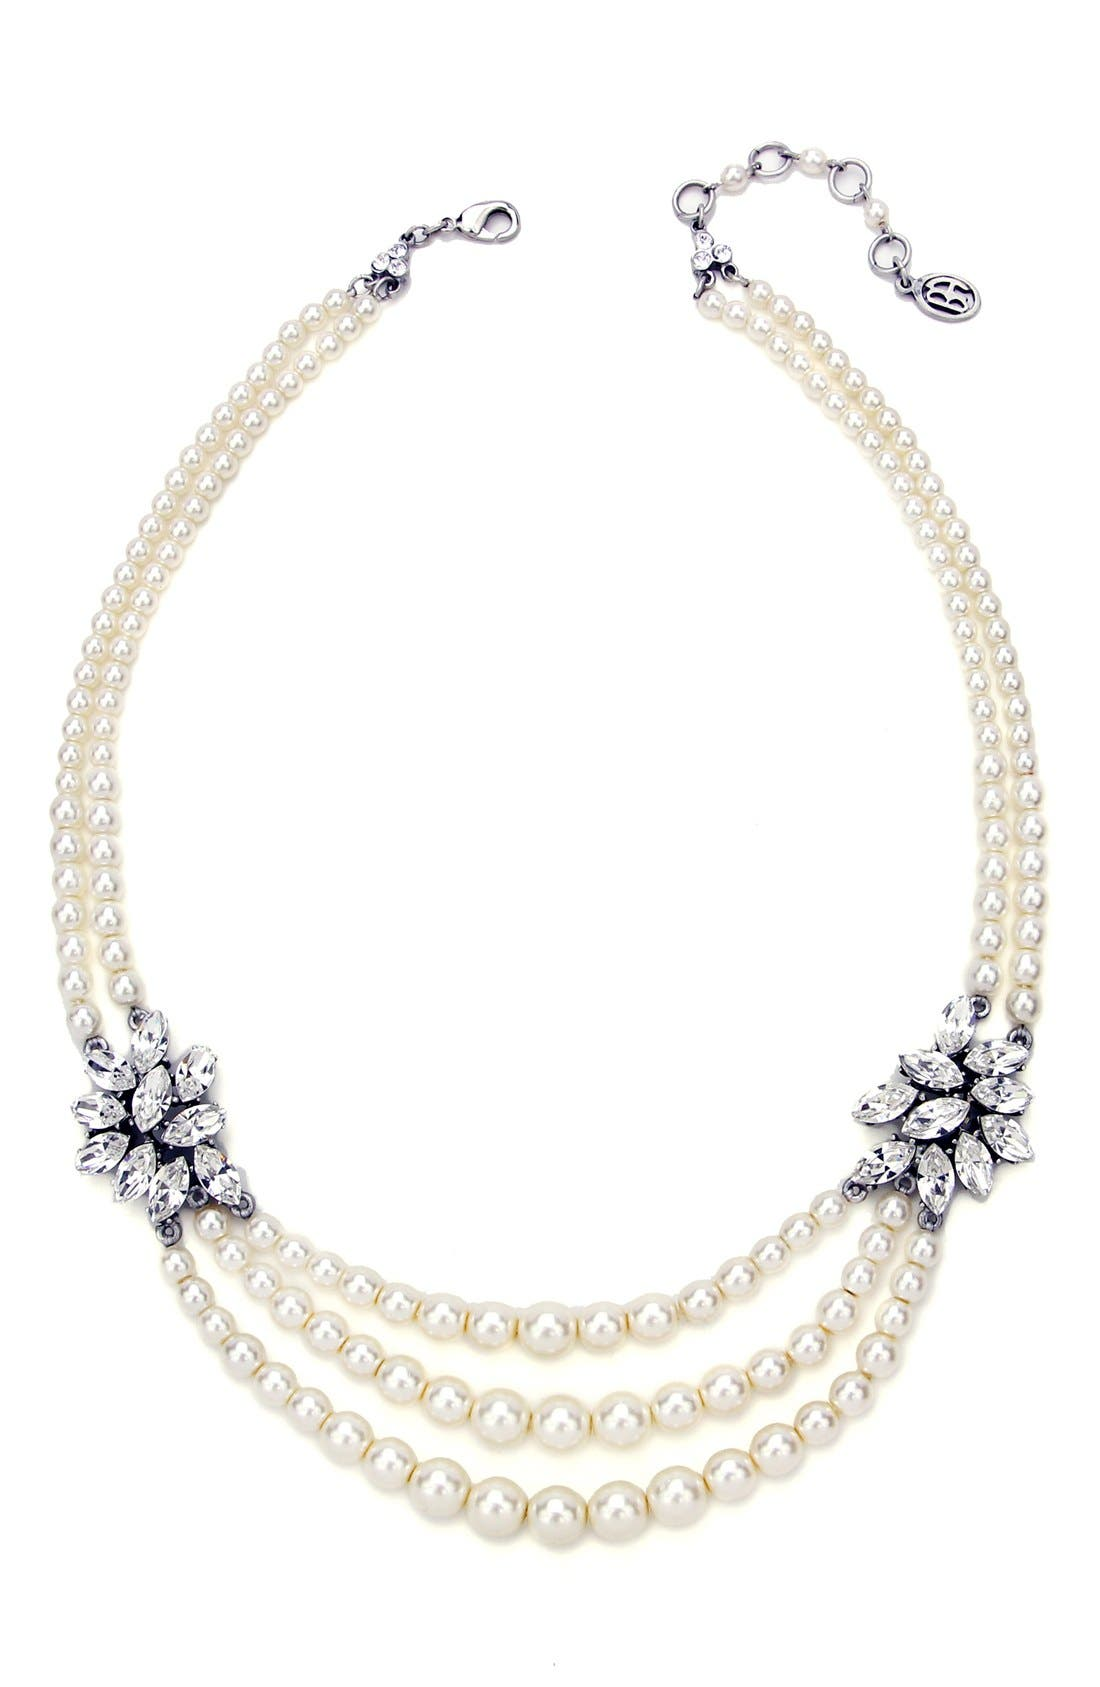 BEN-AMUN Faux Pearl & Crystal Multistrand Necklace, Main, color, IVORY/ CLEAR